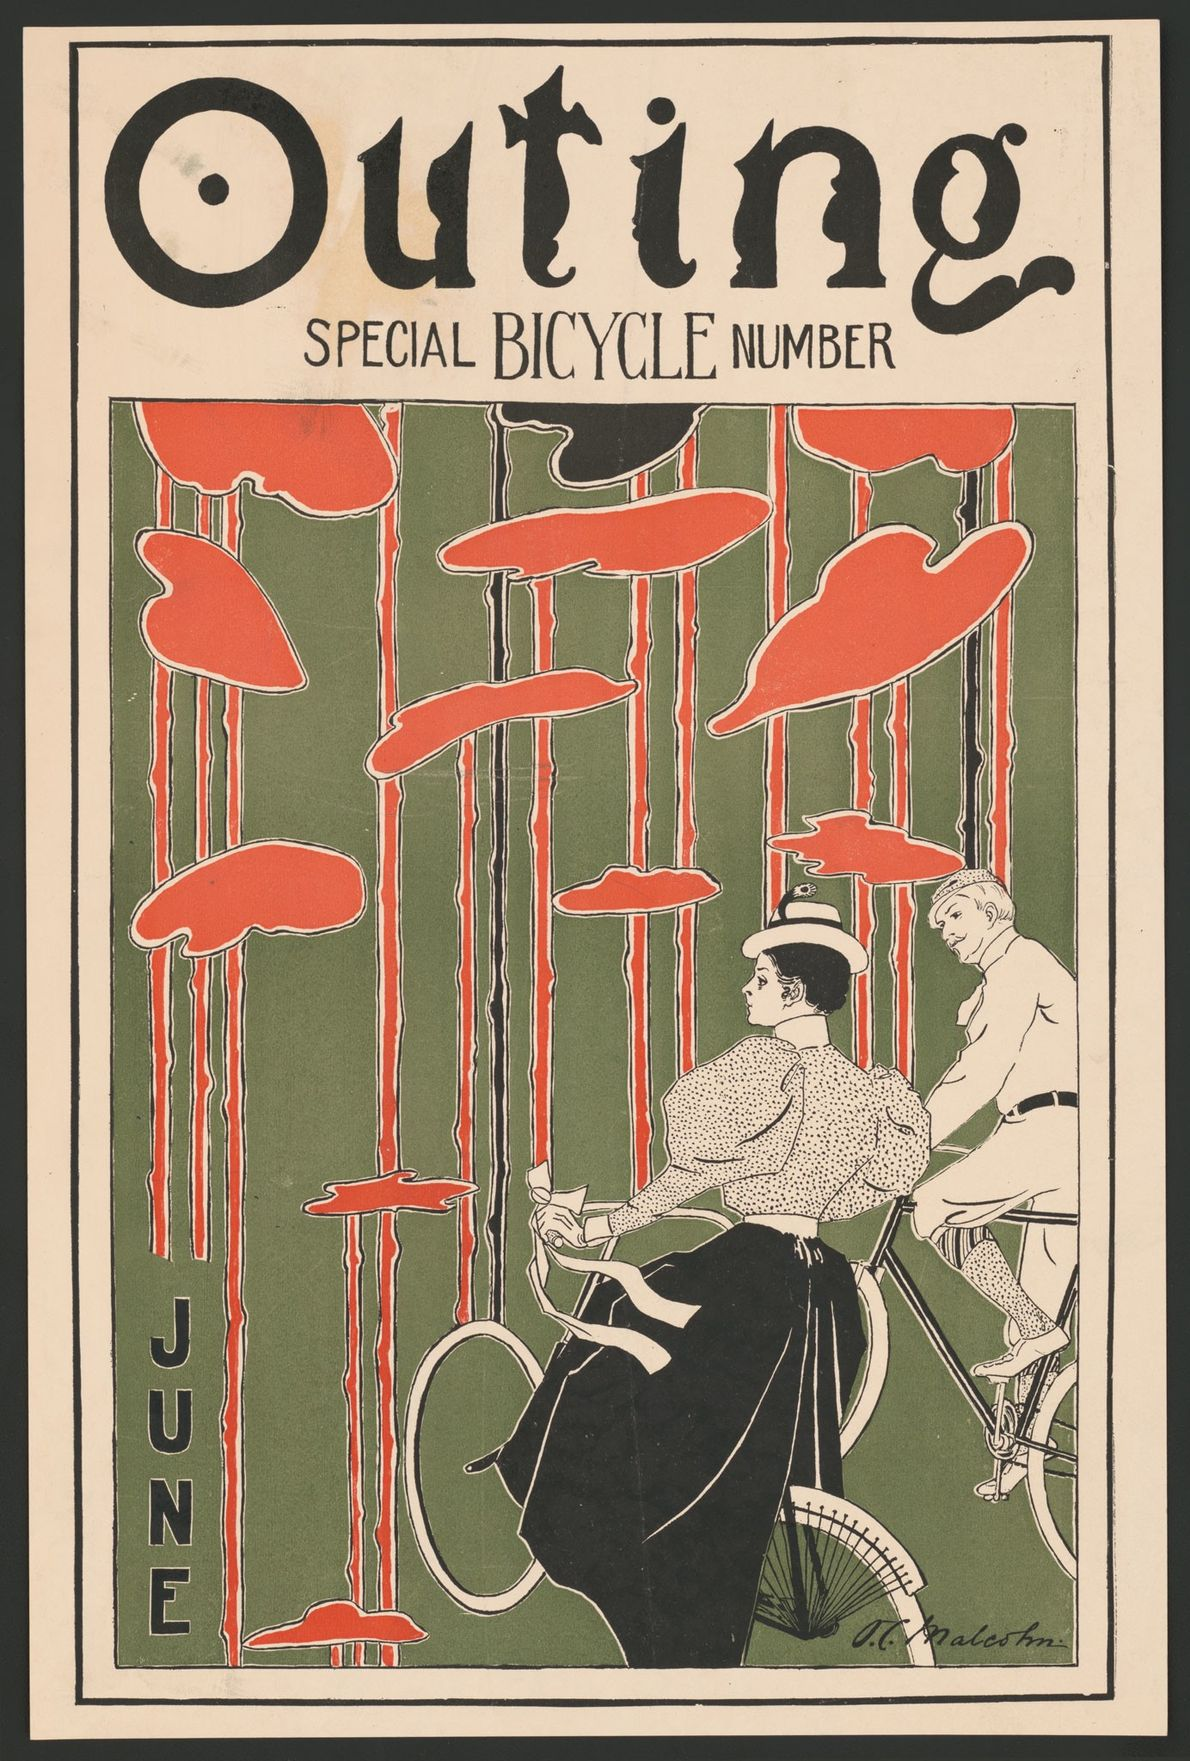 One of America's earliest sporting magazines, Outing devoted many of its pages to cycling. The cycling ...